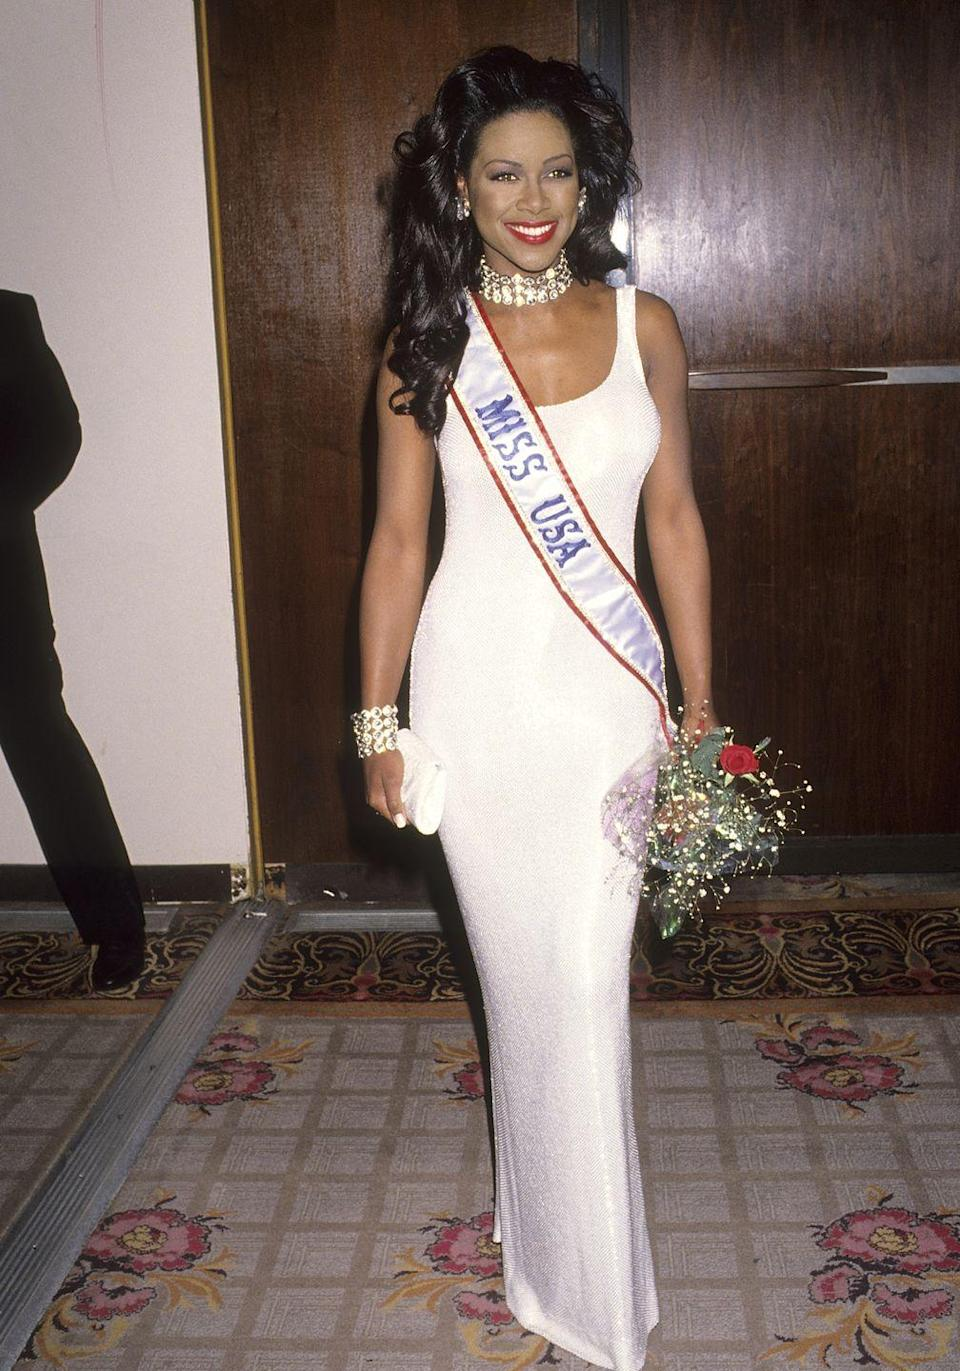 <p>Kenya competed in the 1993 Miss USA competition as a representative from Michigan and won. She was the second Black woman to wear the crown. </p>